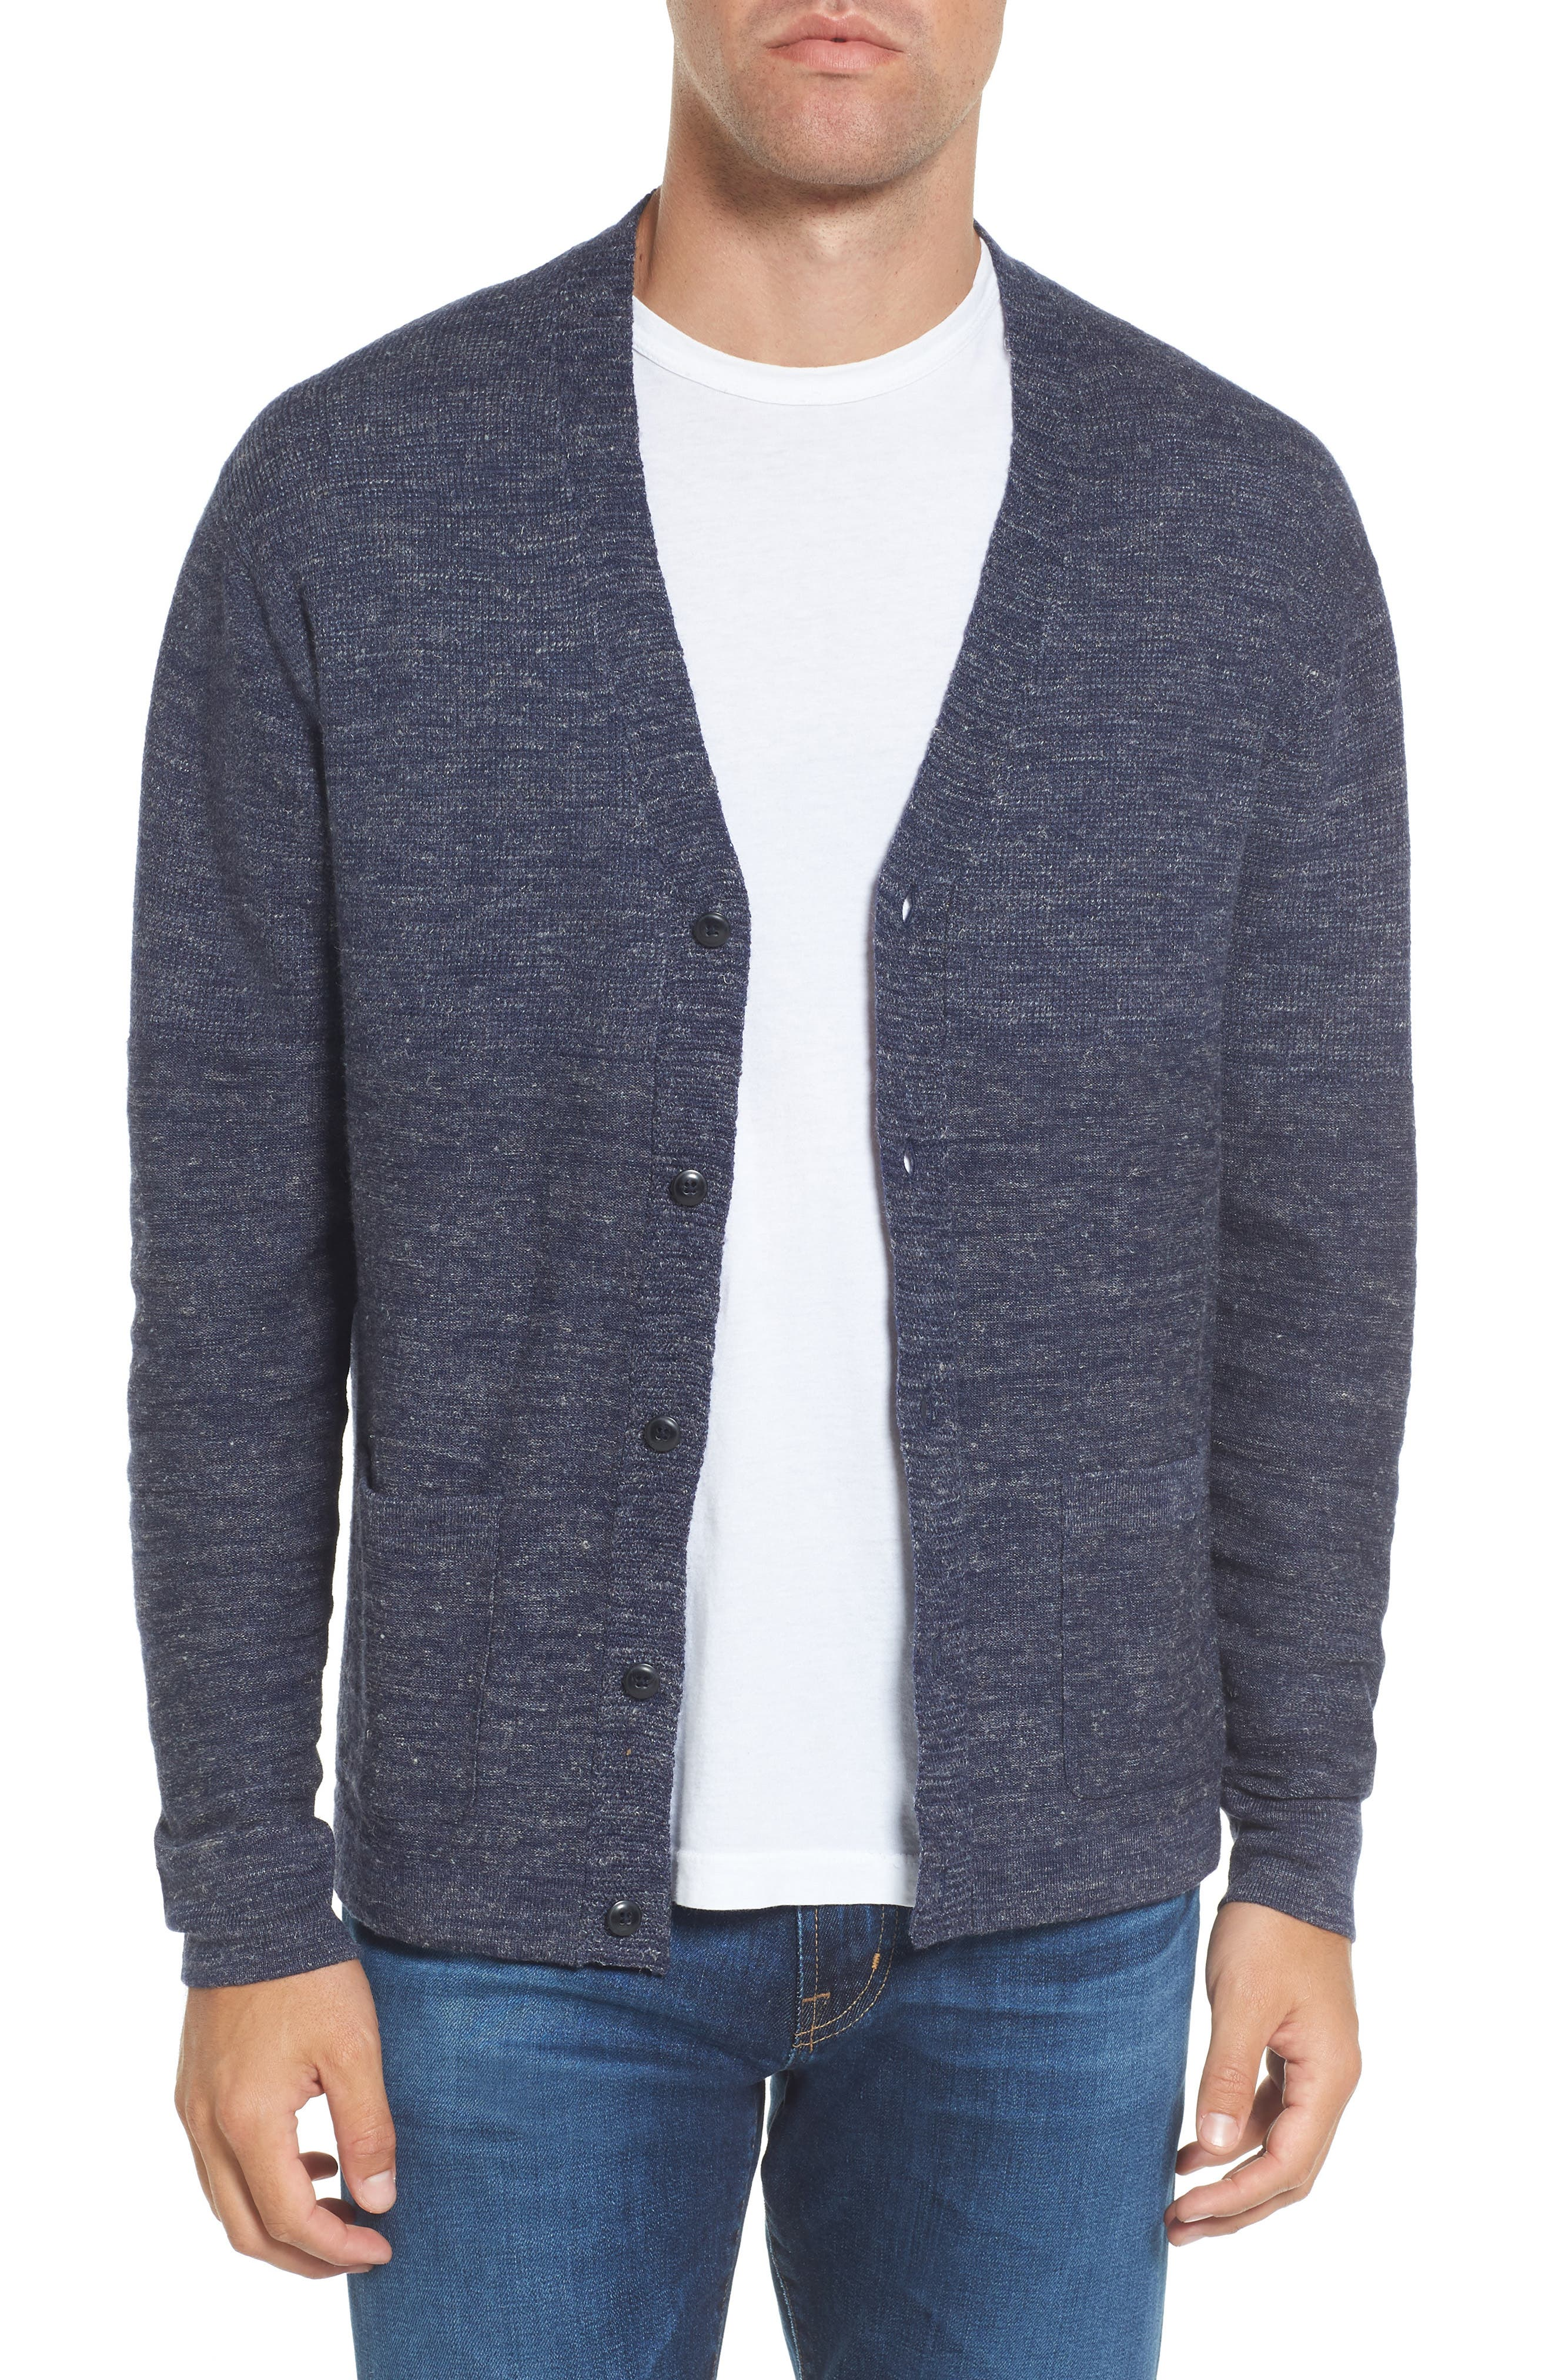 Wadsworth Modern Fit Wool & Linen Cardigan,                         Main,                         color, Navy